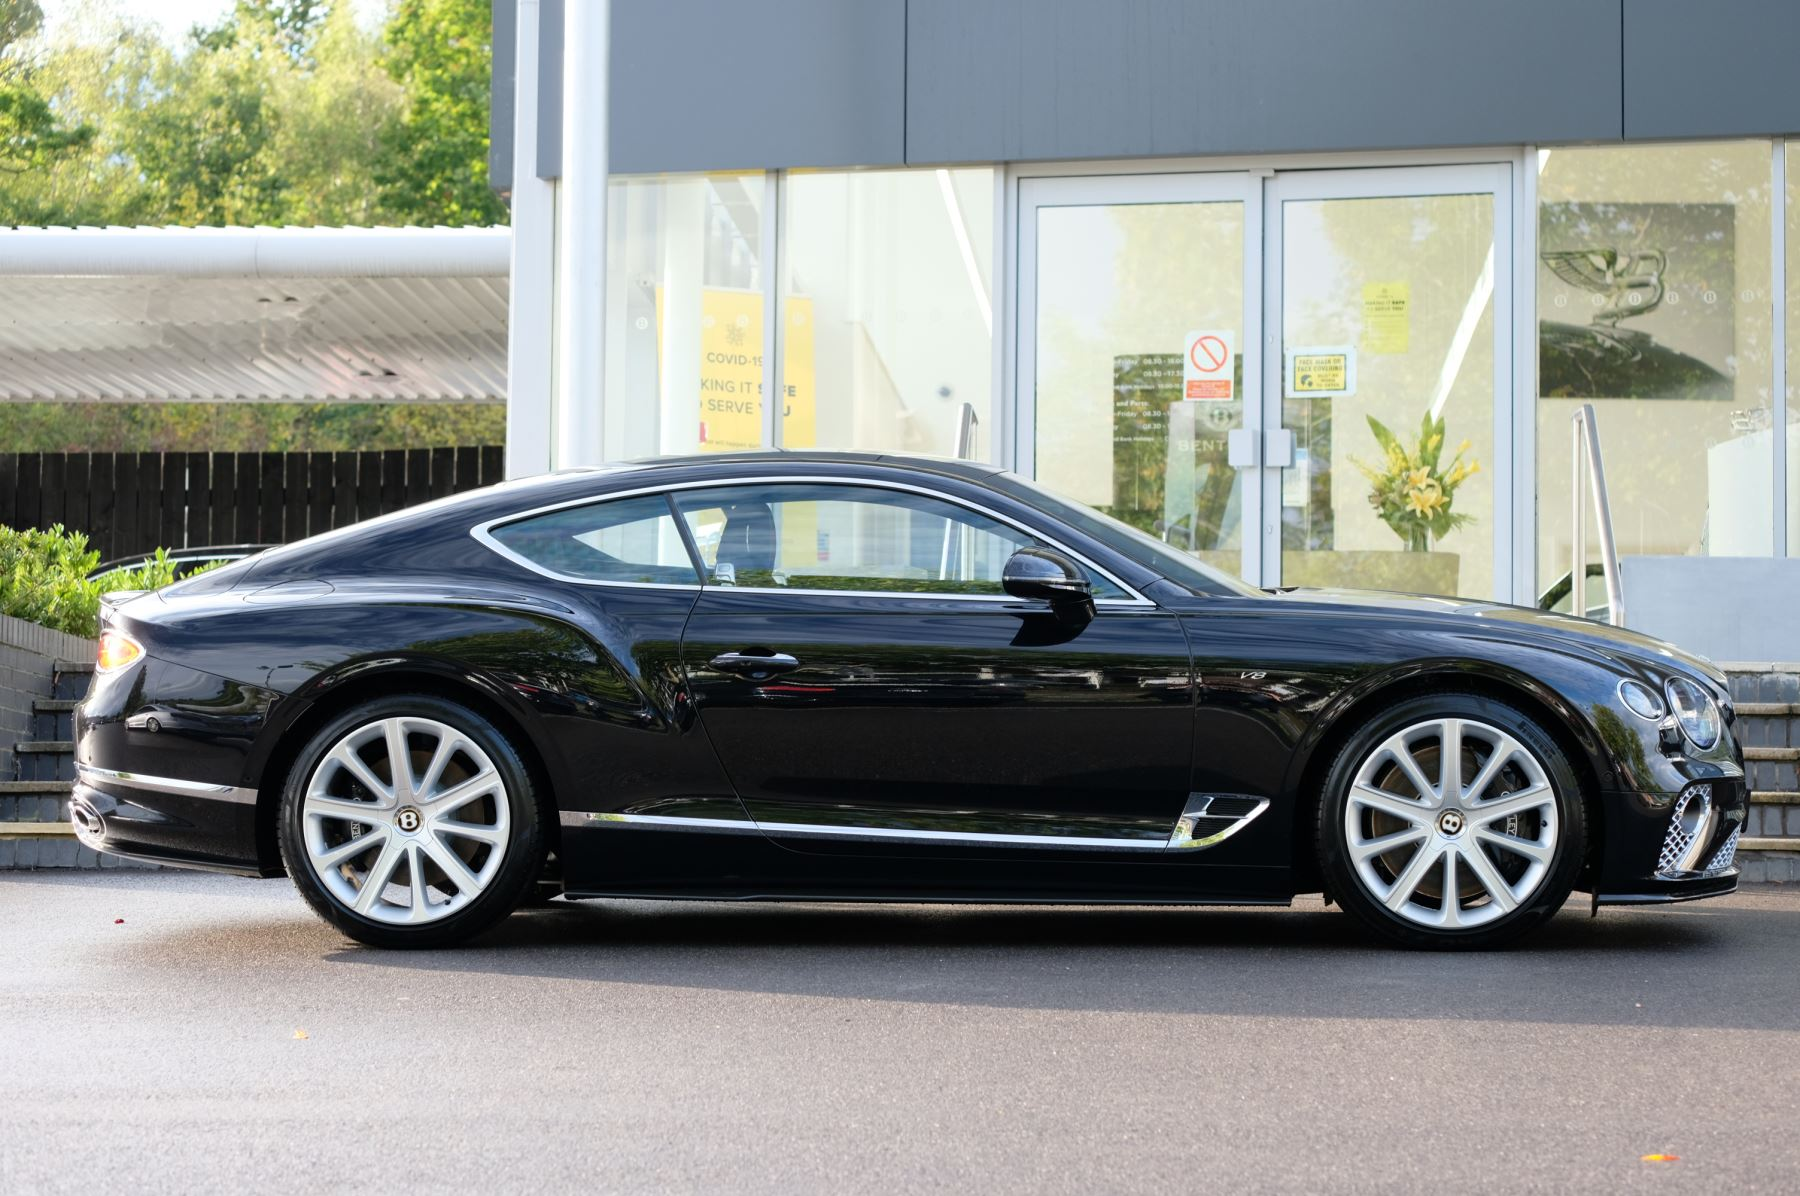 Bentley Continental GT 4.0 V8 2dr Auto [City+Touring Spec] image 3